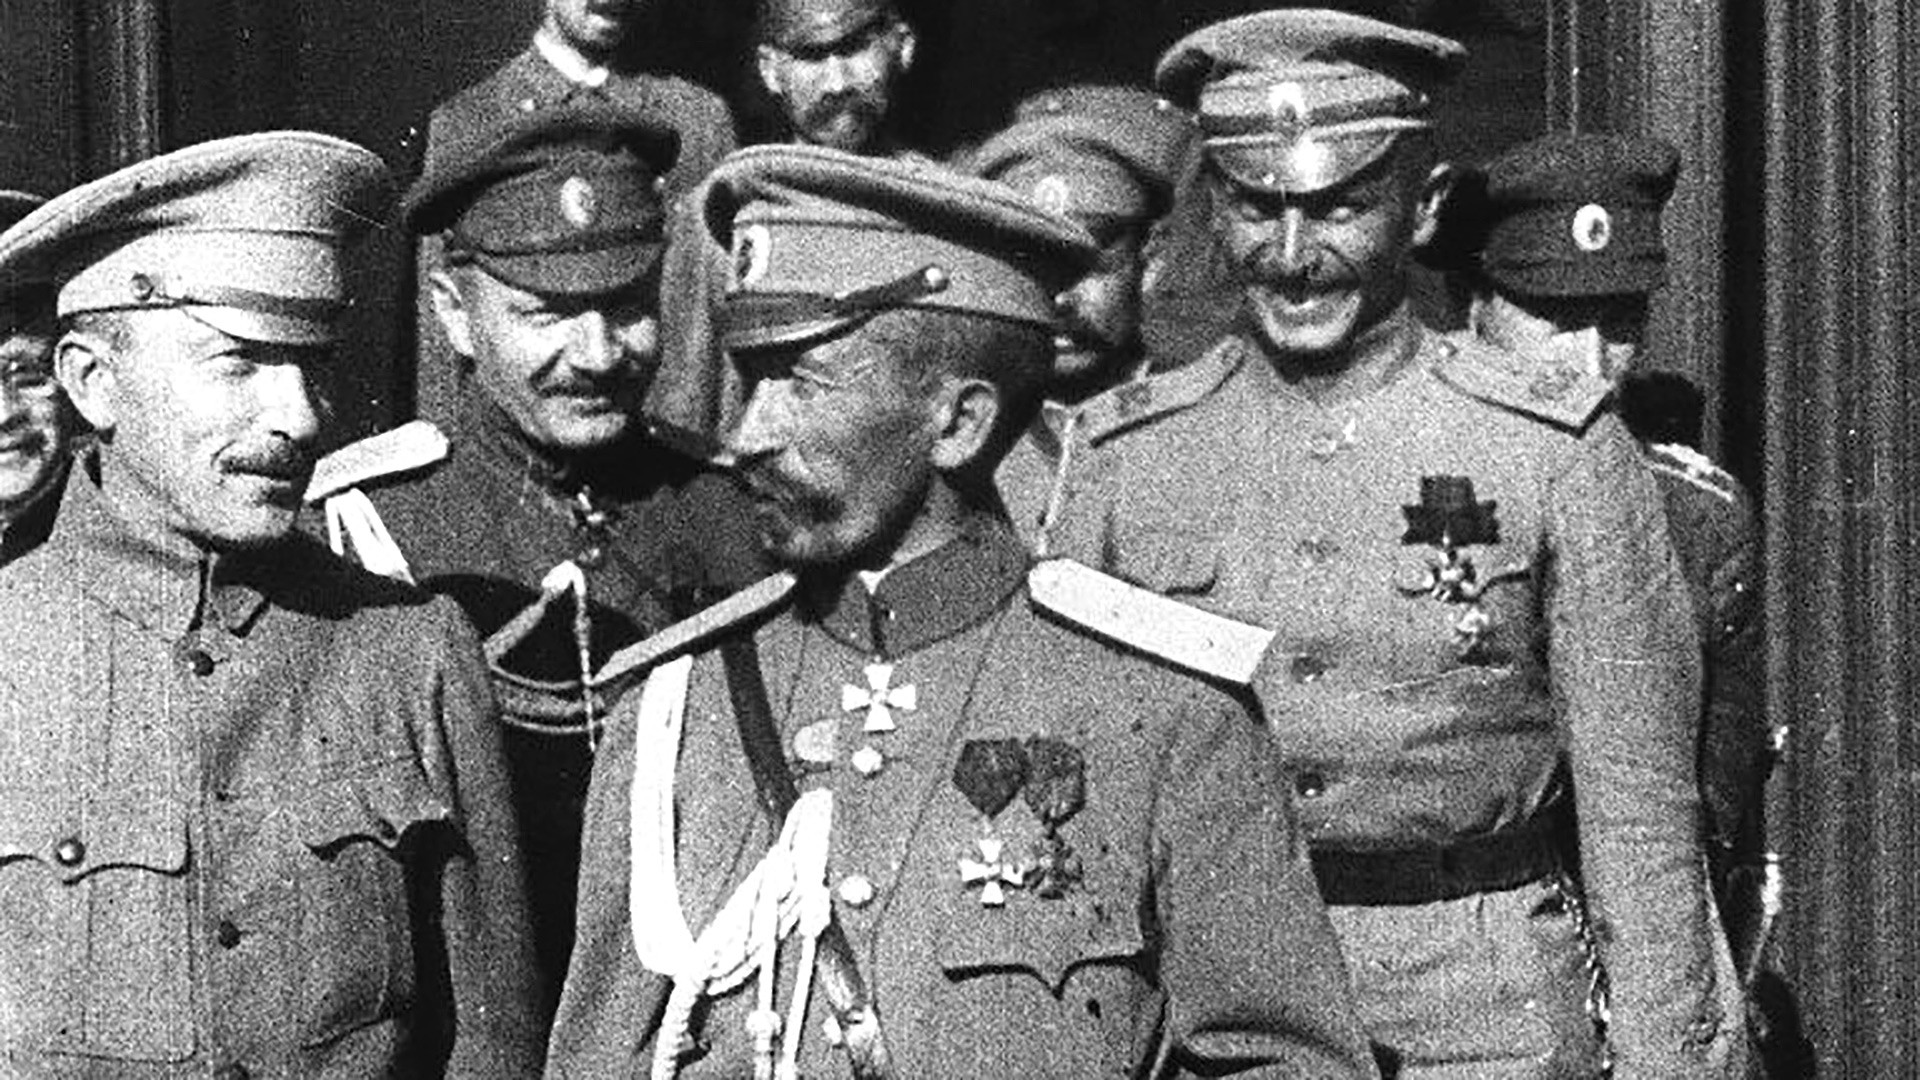 The Commander-in-Chief General Kornilov sent troops to Petrograd to challenge the Provisional Government in August 1917